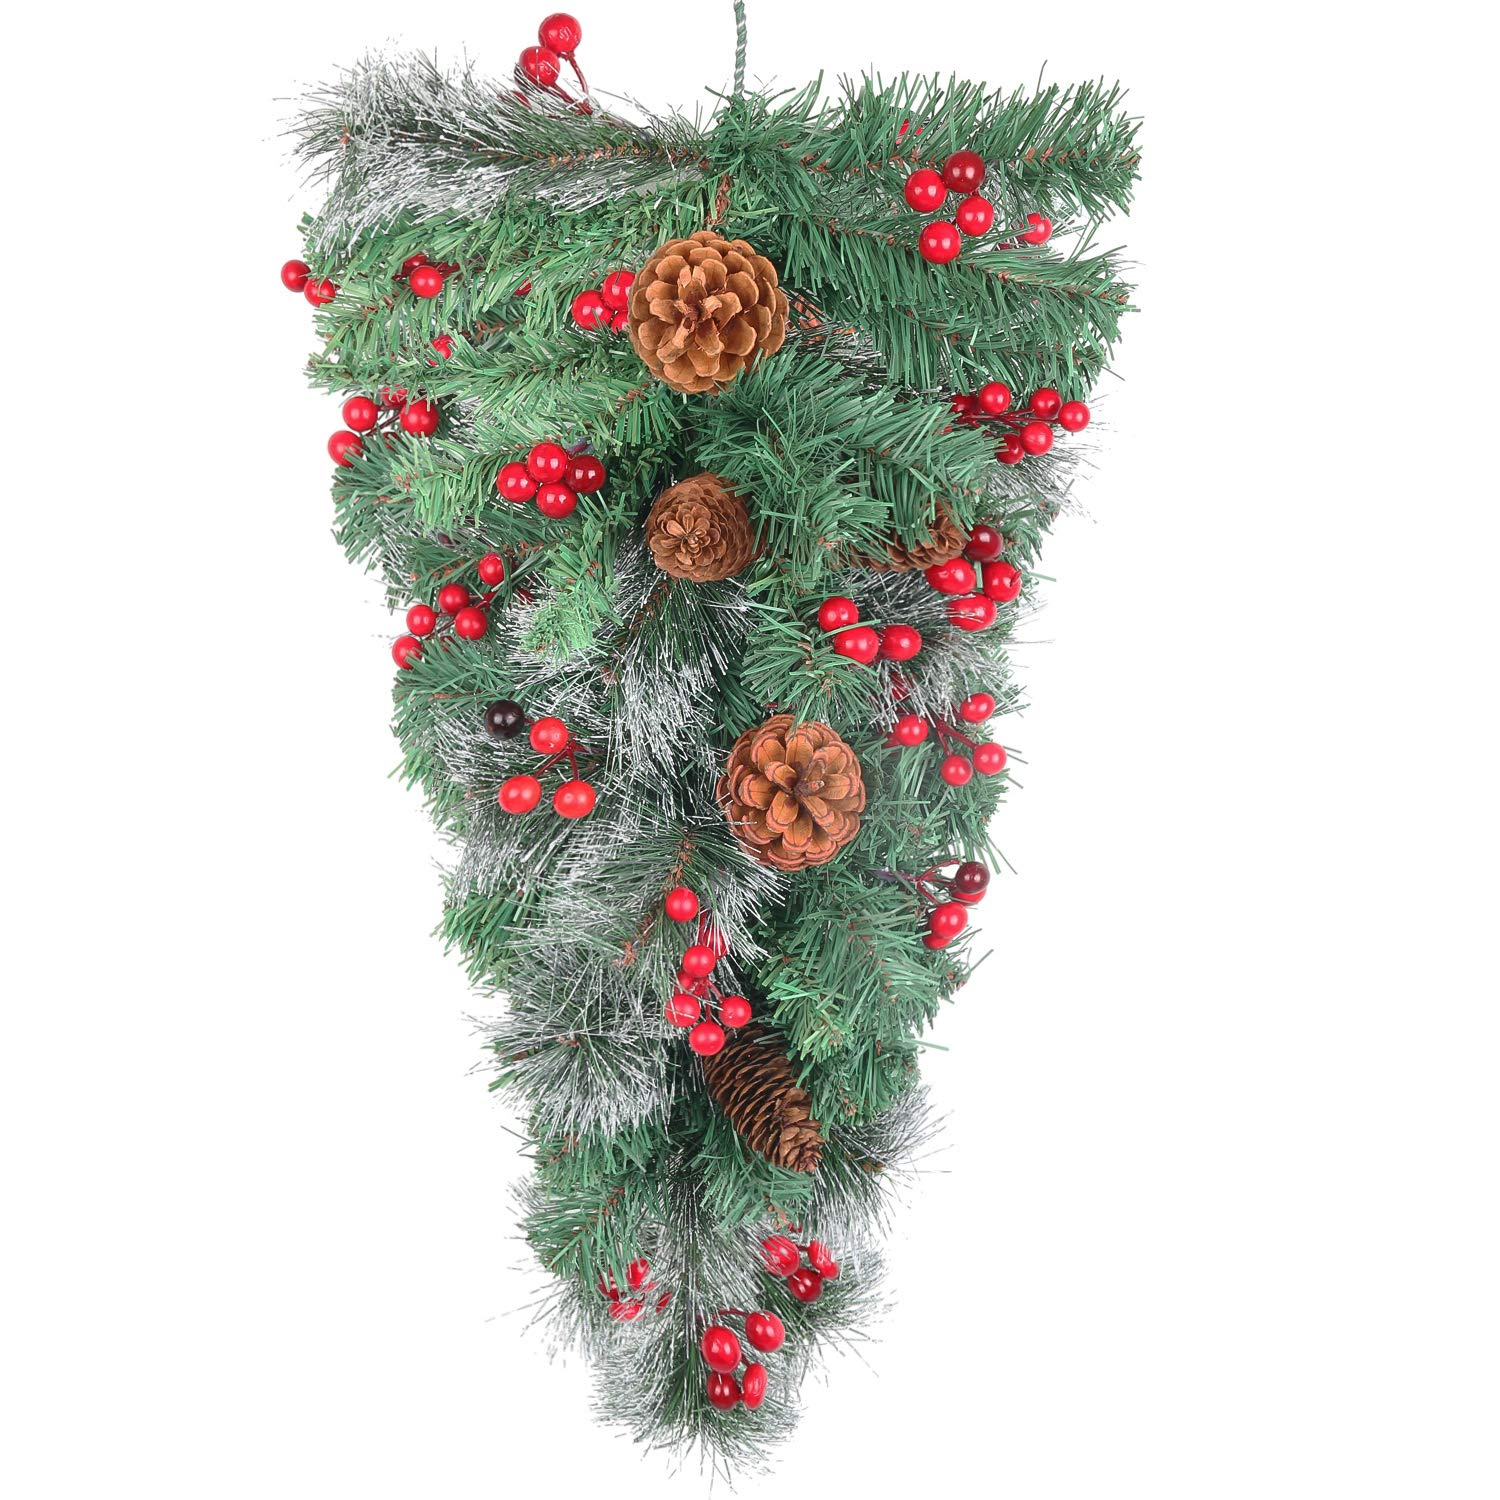 """Pauwer 28"""" Christmas Swag Wintry Pine and Pine Cones Teardrop Swag with Red Berries for Door Wall Hanging Christmas Decoration"""